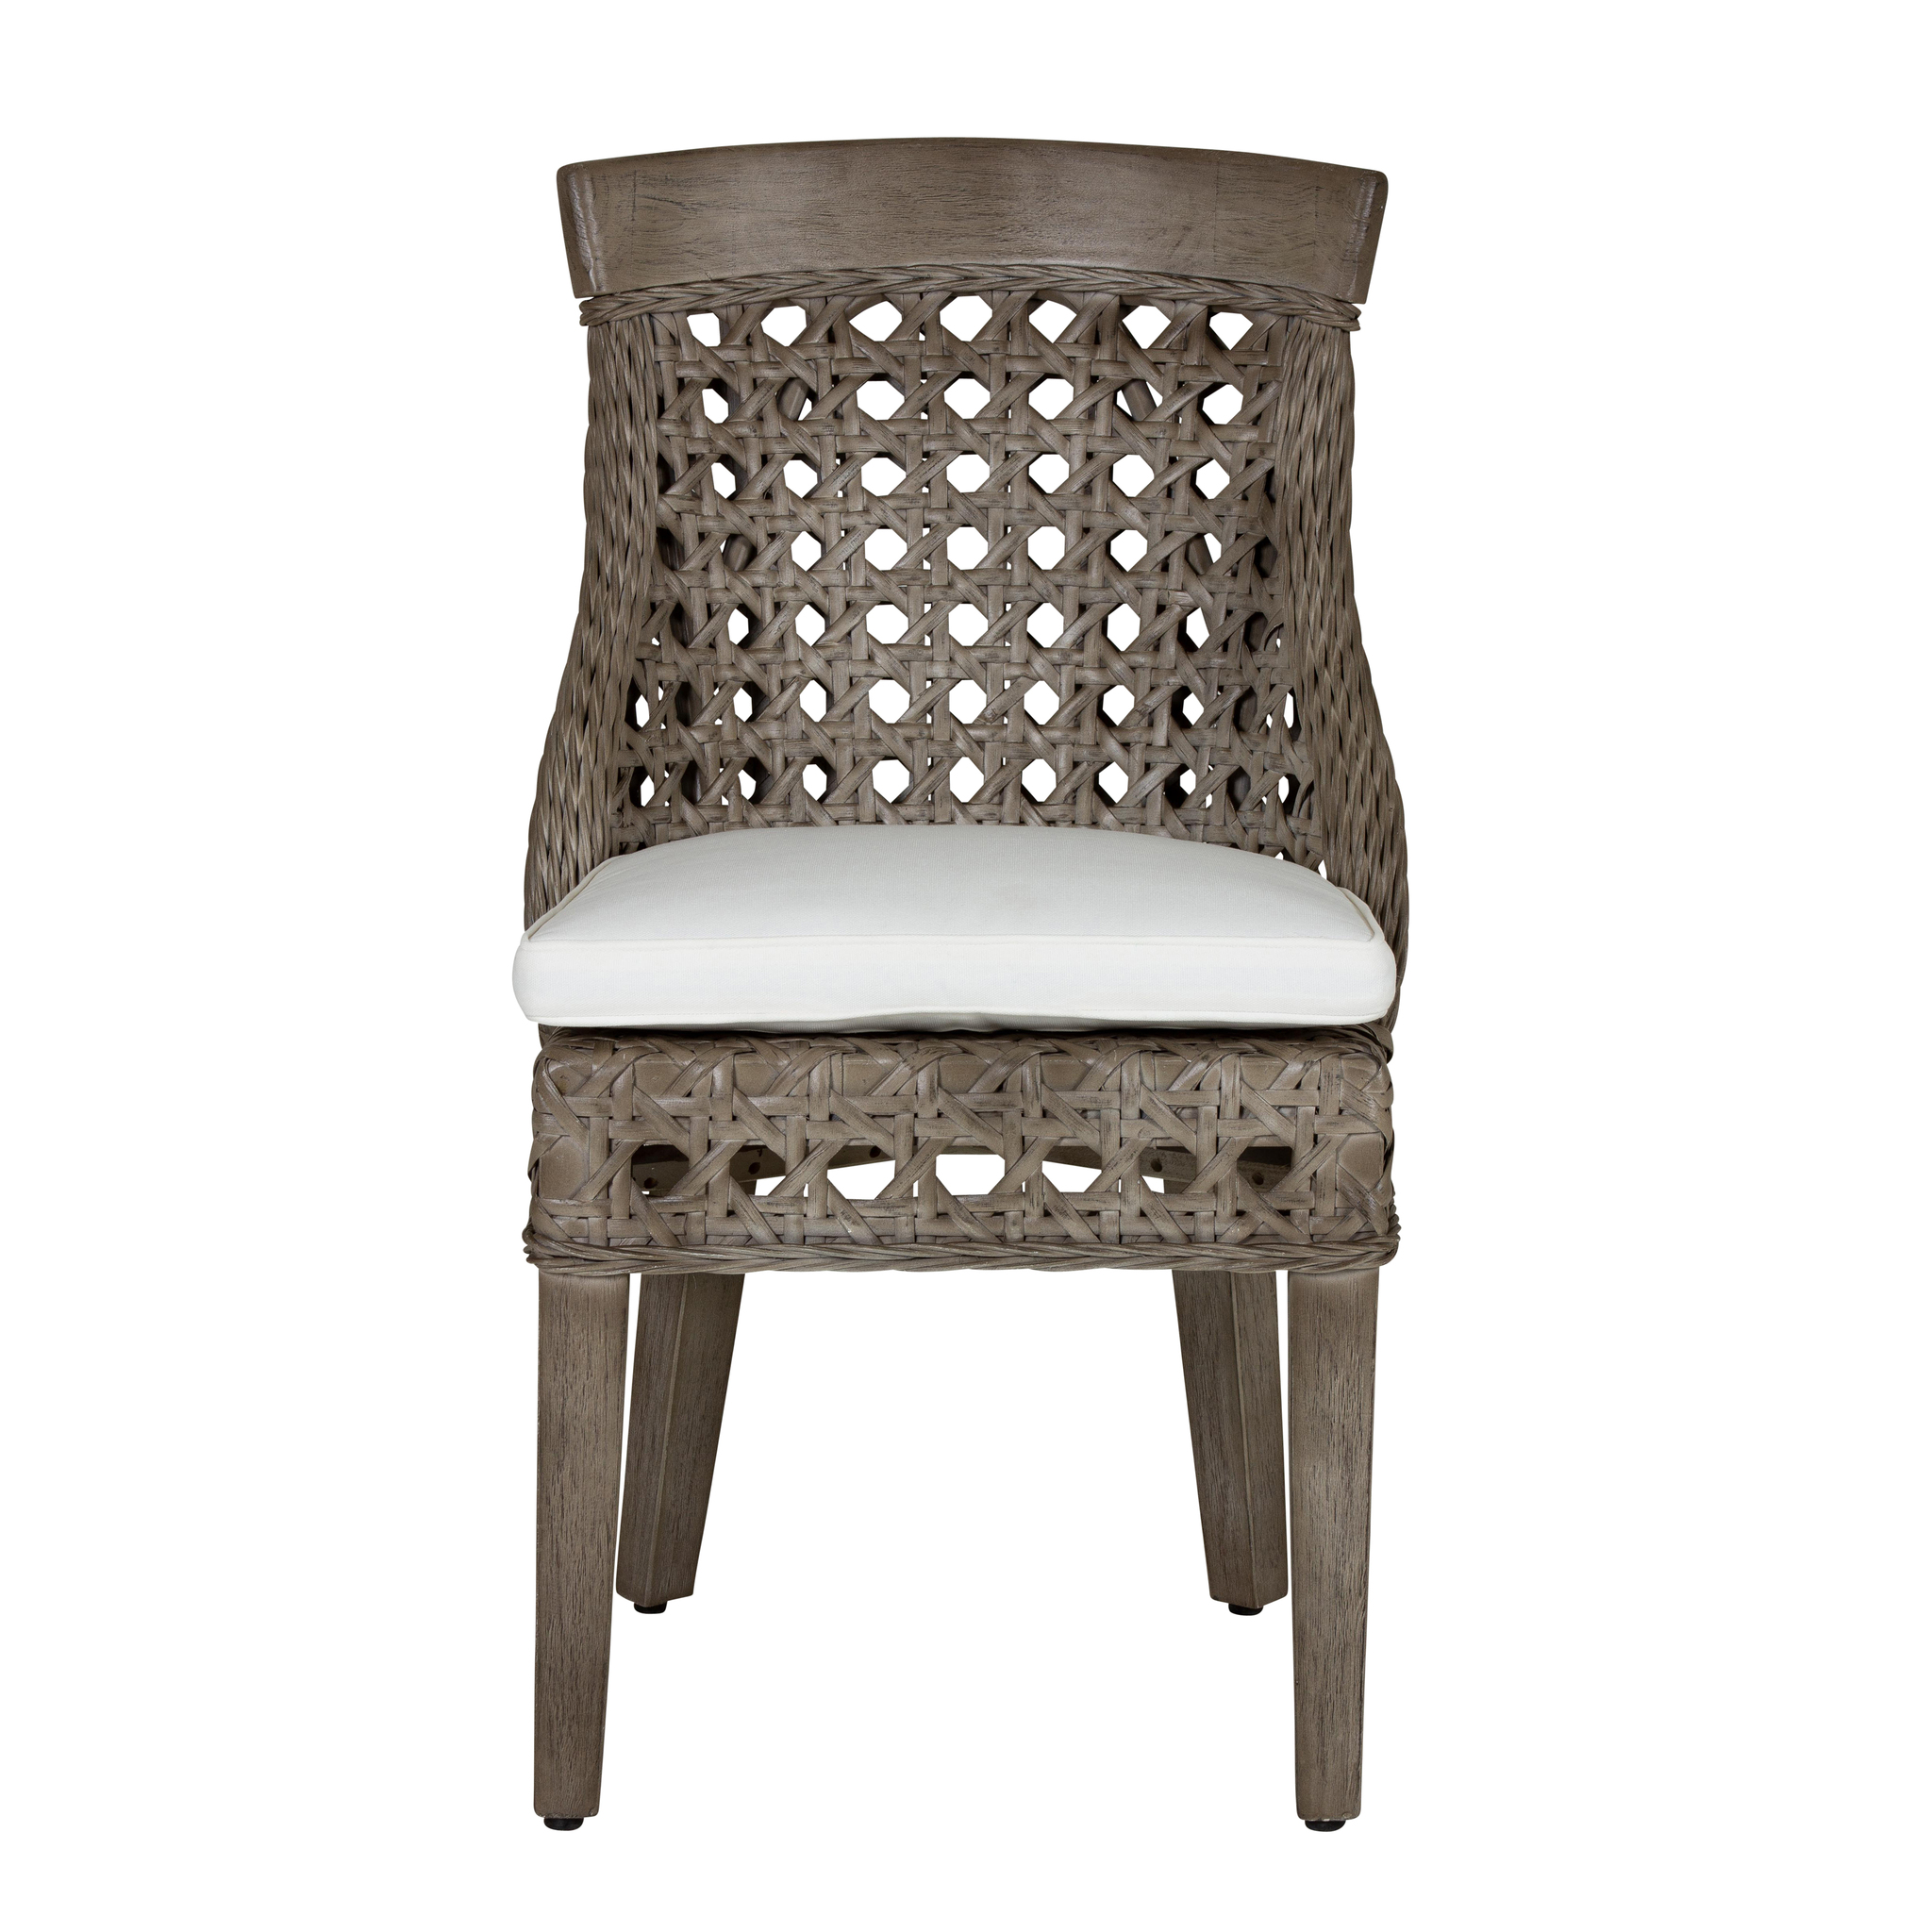 Sahara Side Chair W/ Wood Accent   Grey Wash (22x25.5x37)